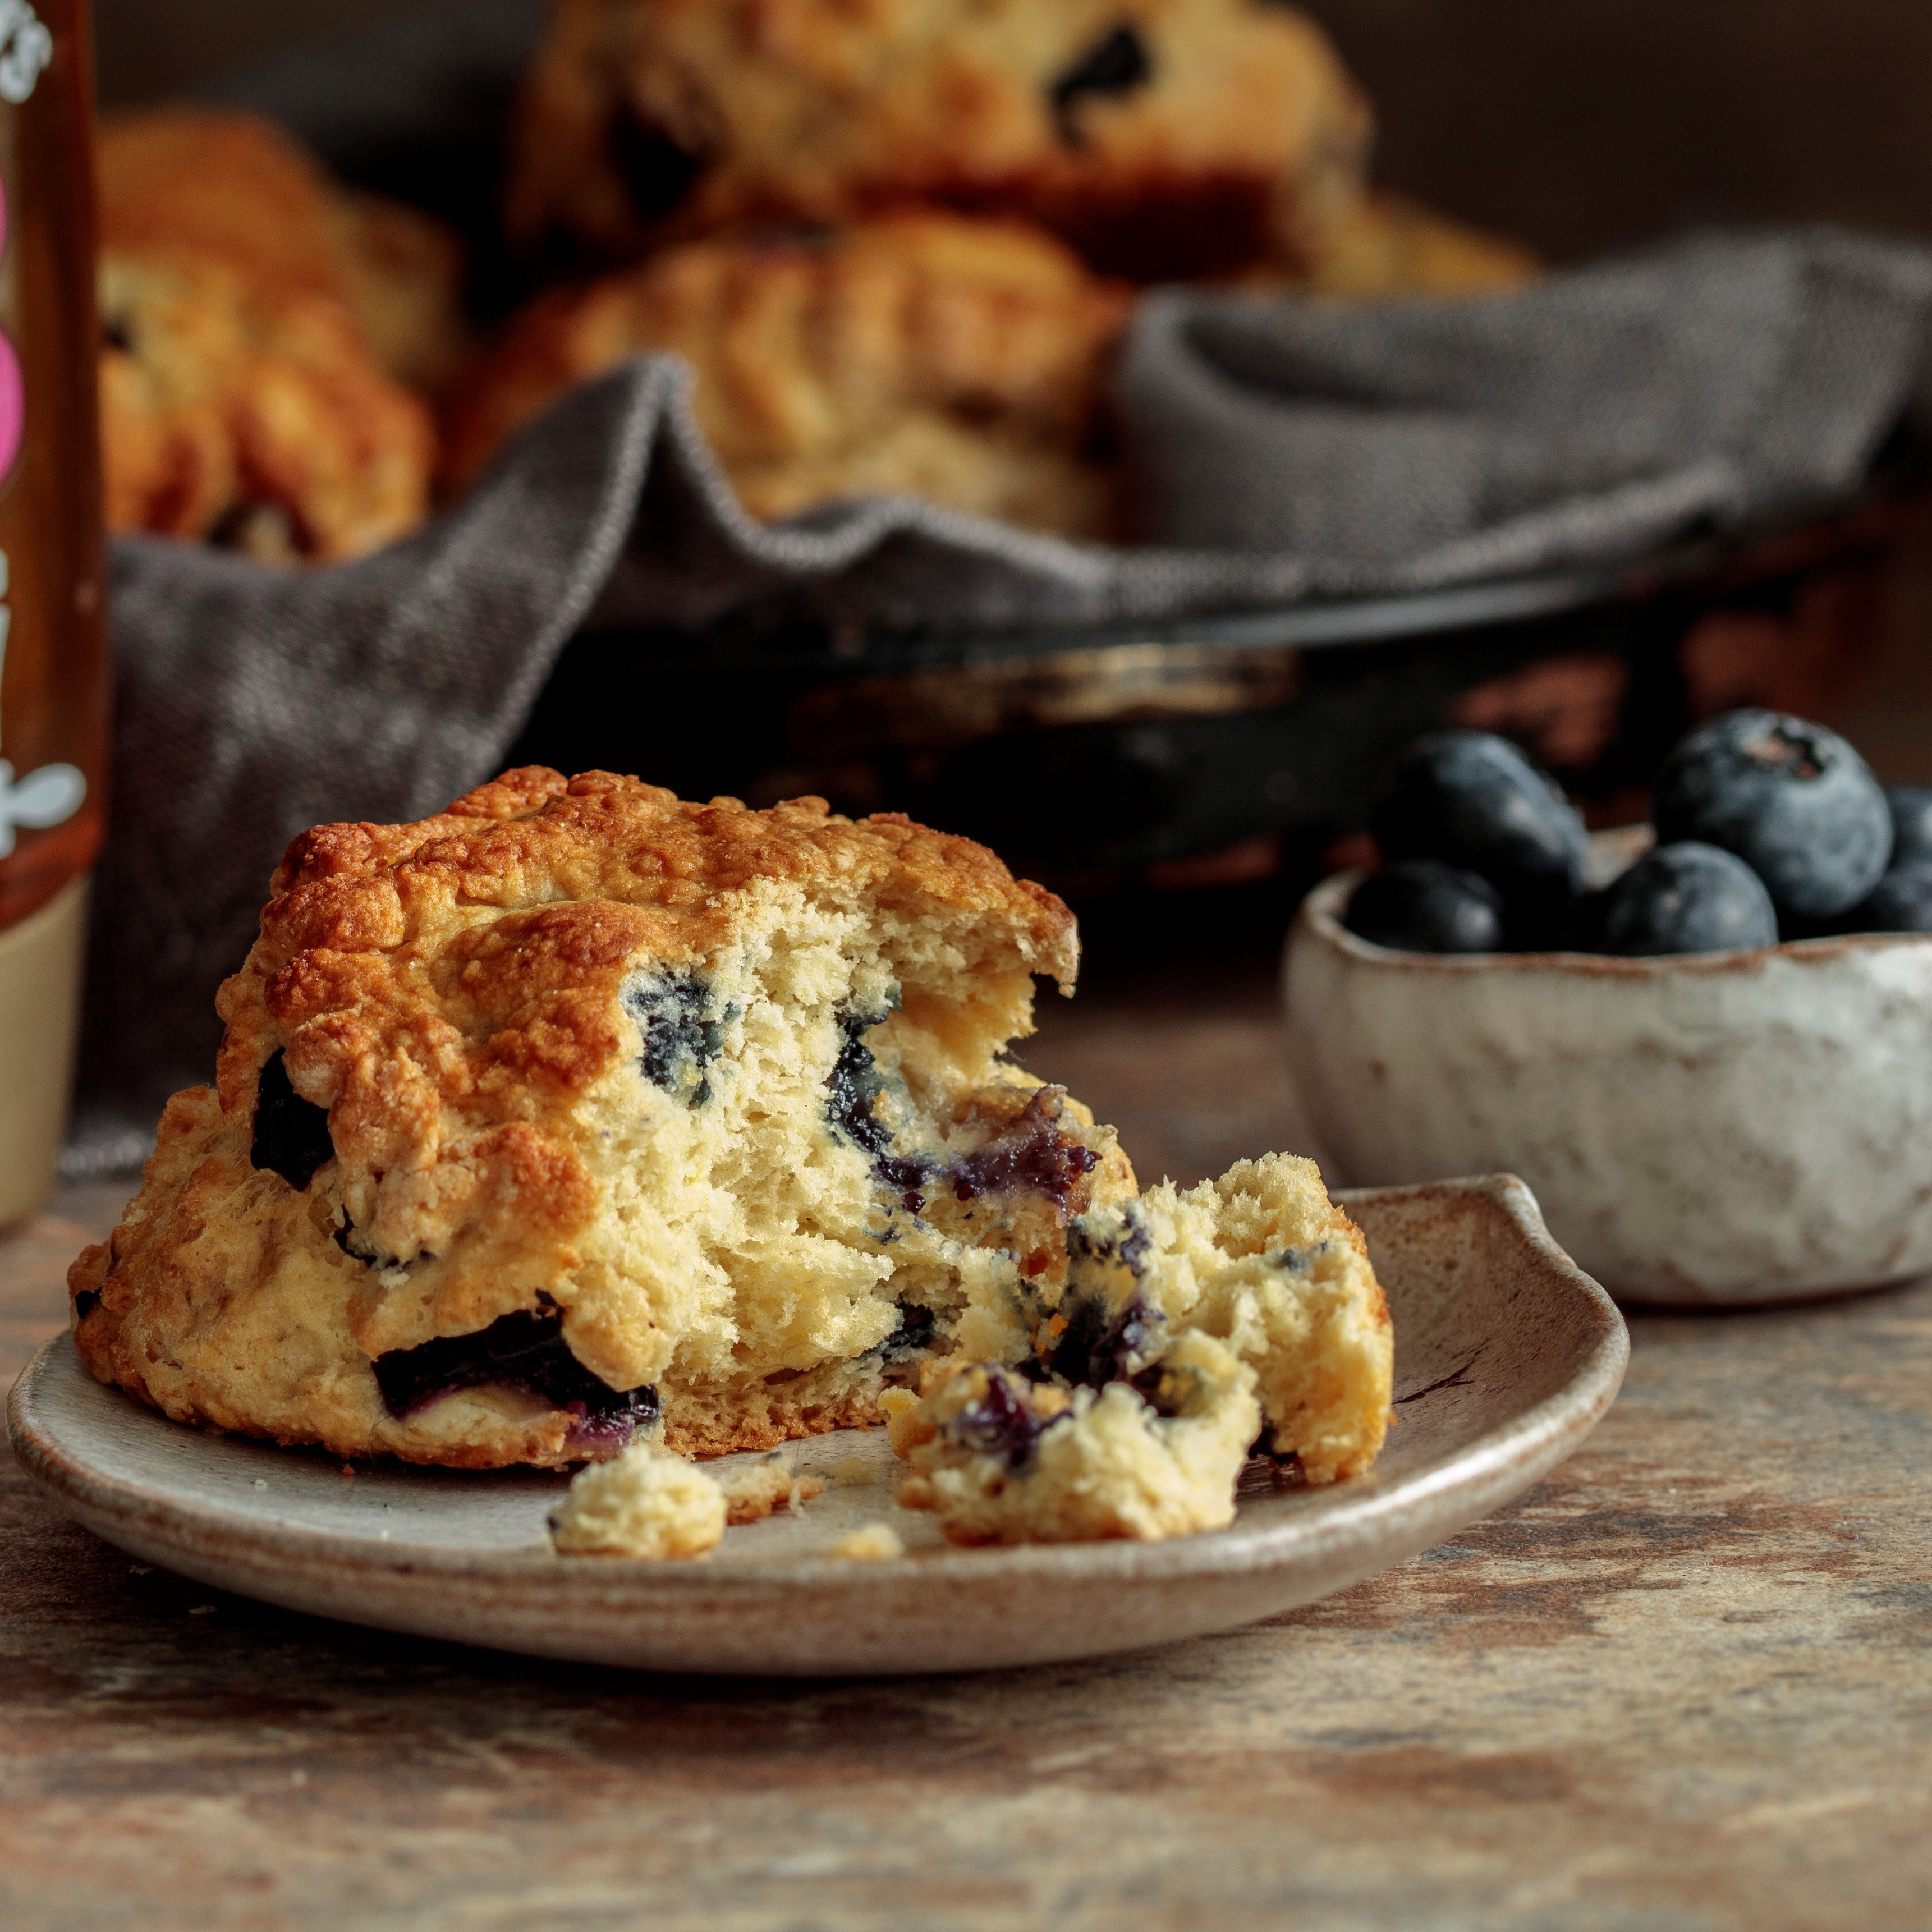 Blueberry honey scone on plate torn open with bowl of blueberries